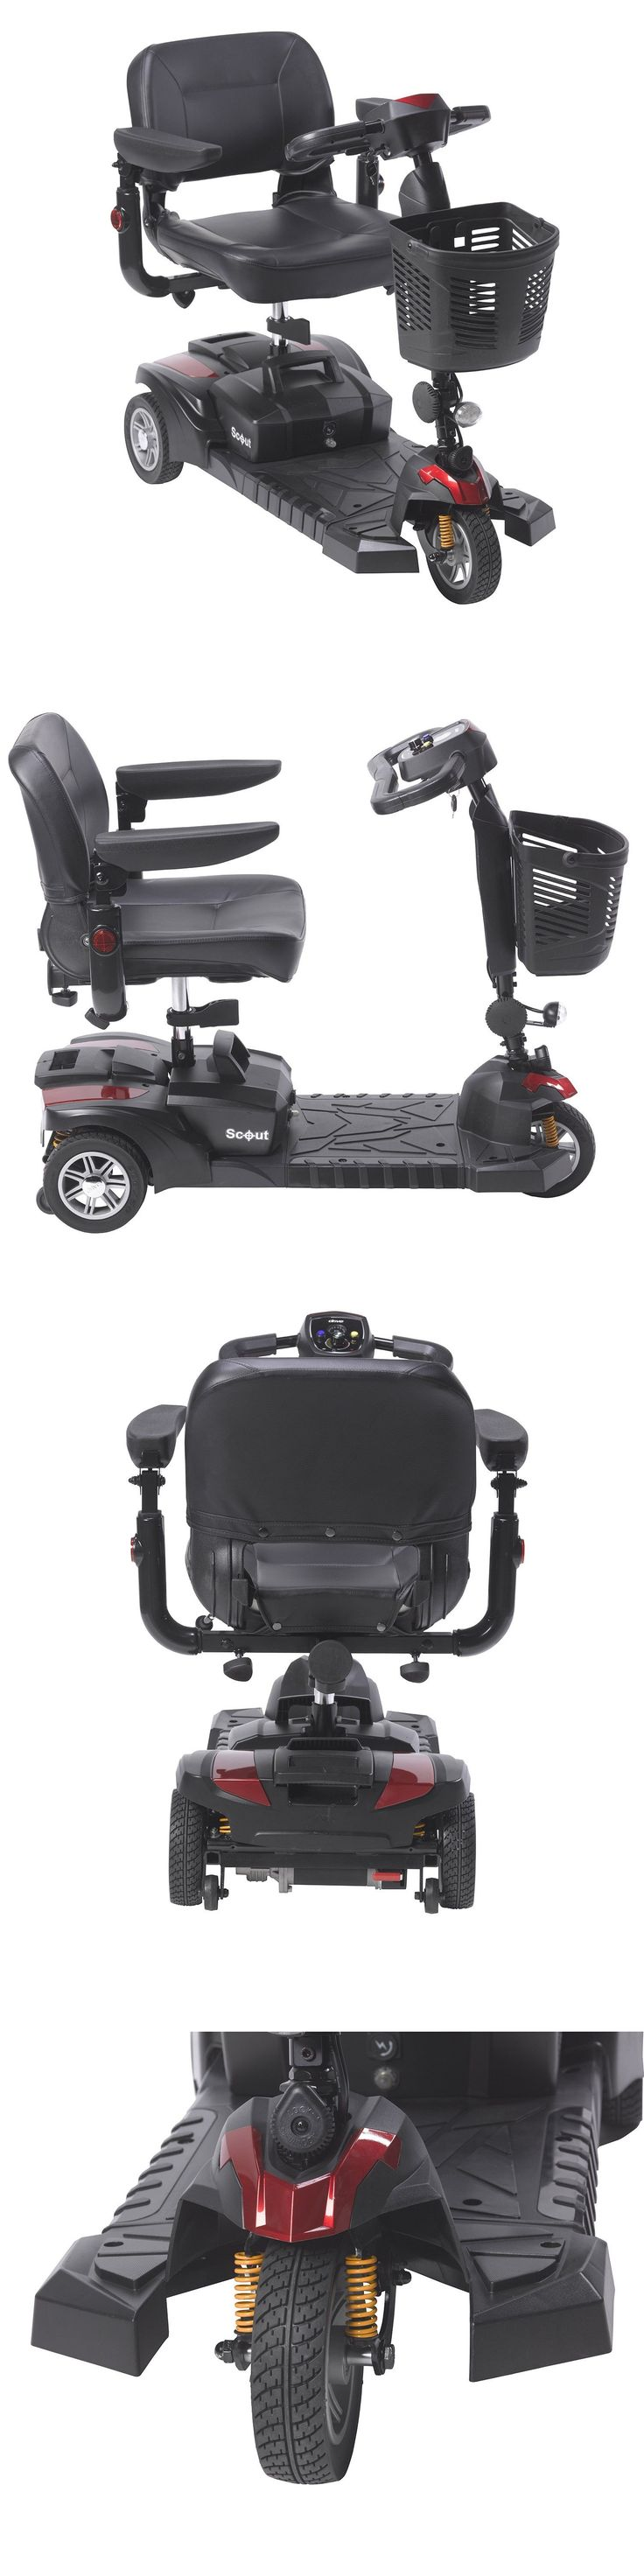 Mobility Scooters: New Design Scout Dst 3 Wheel Scooter Dynamic Suspension Tecnology -> BUY IT NOW ONLY: $975.0 on eBay!